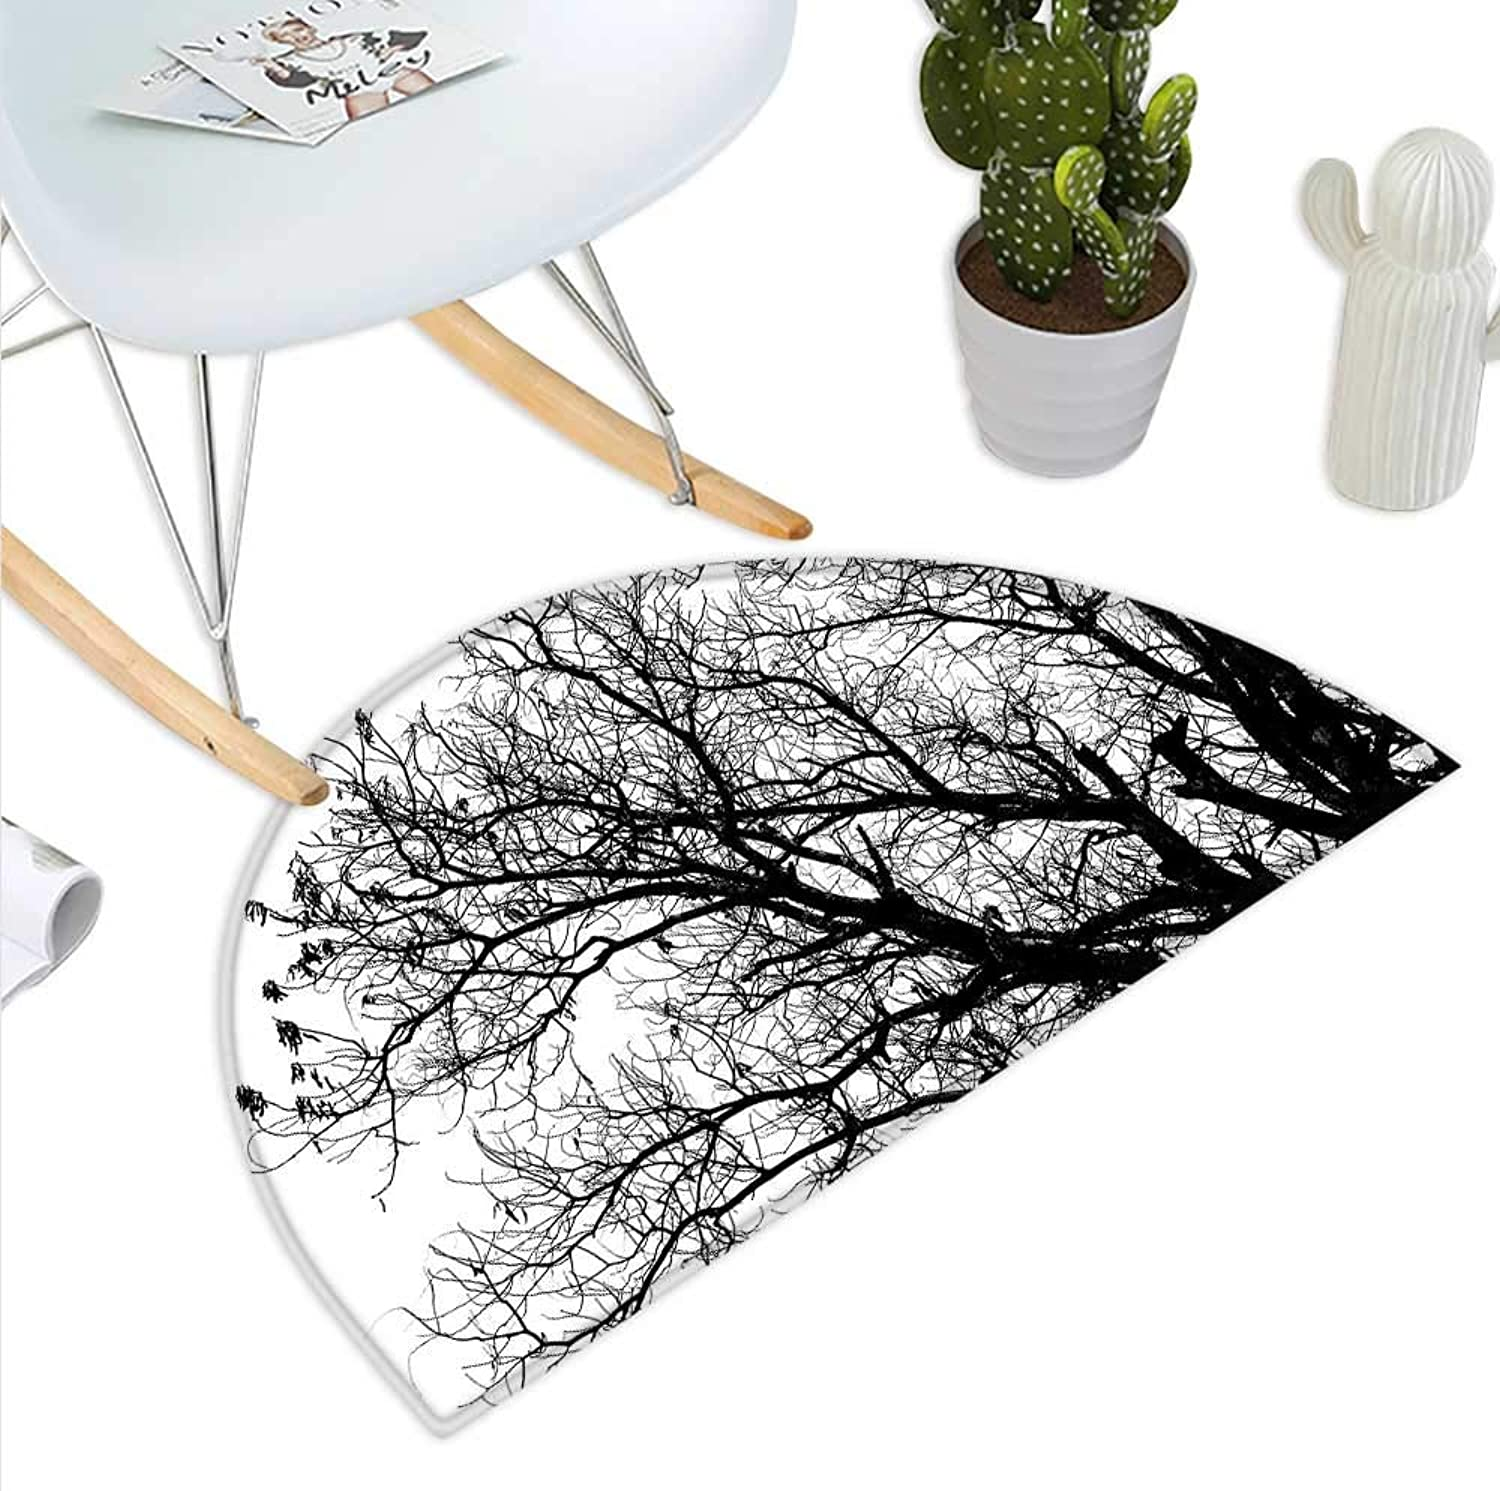 Nature Semicircle Doormat Leafless Autumn Fall Tree Branches Tops Oak Forest Woodland Season Eco Theme Halfmoon doormats H 43.3  xD 64.9  Black and White